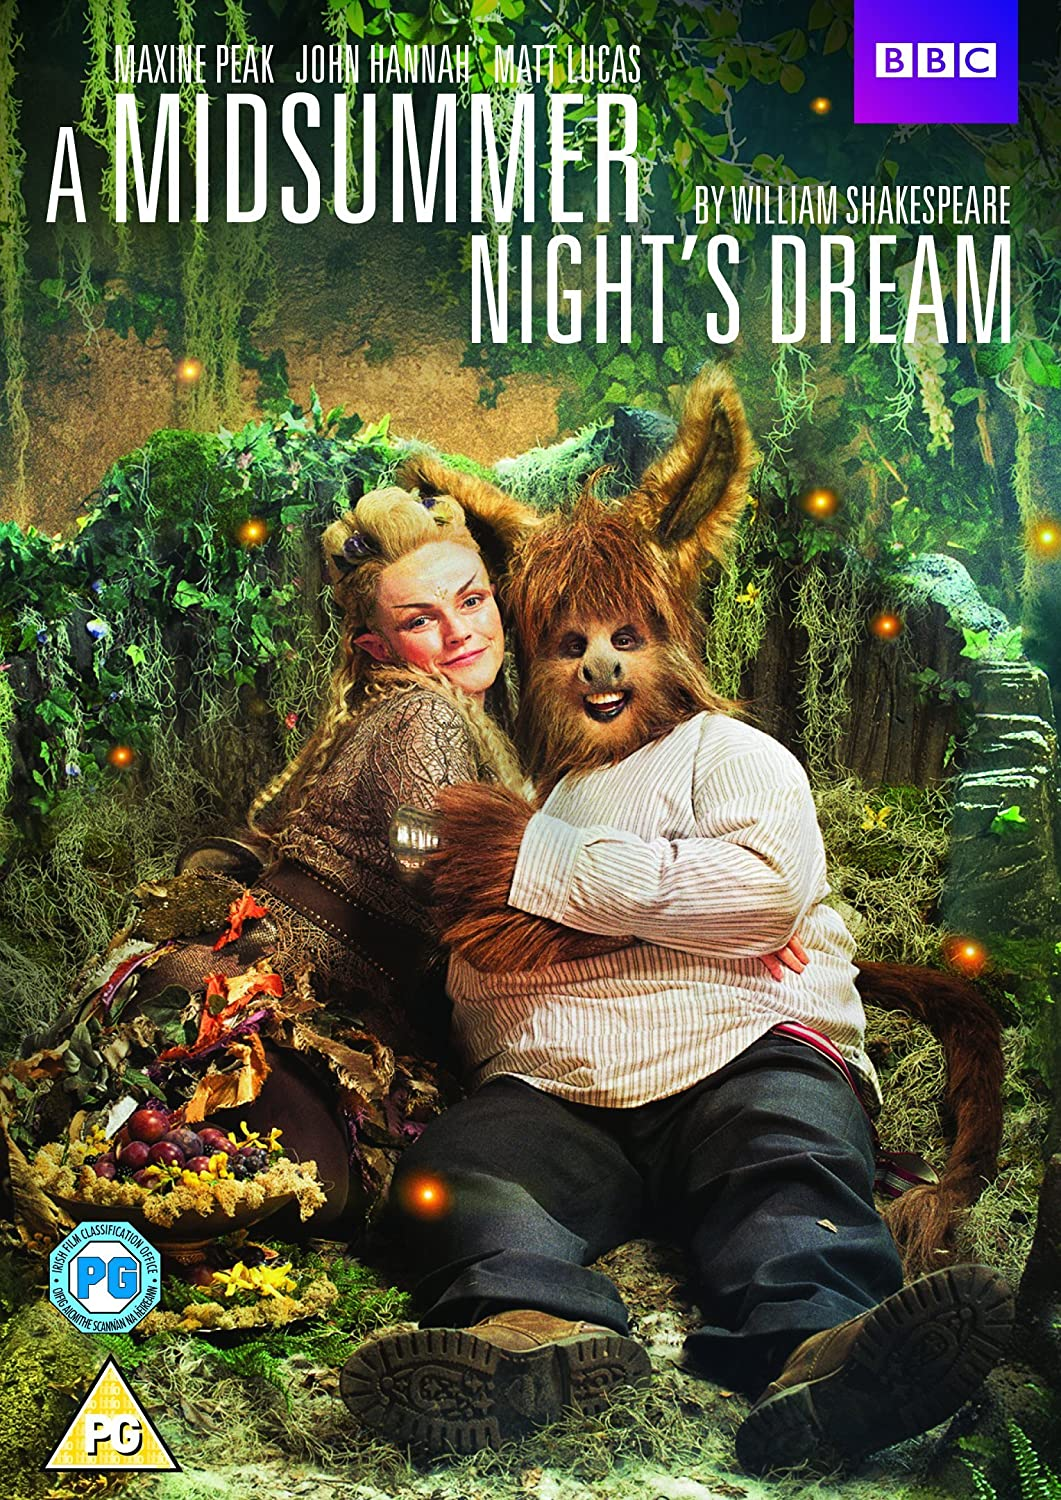 Russell T Davies's A Midsummer Night's Dream cover